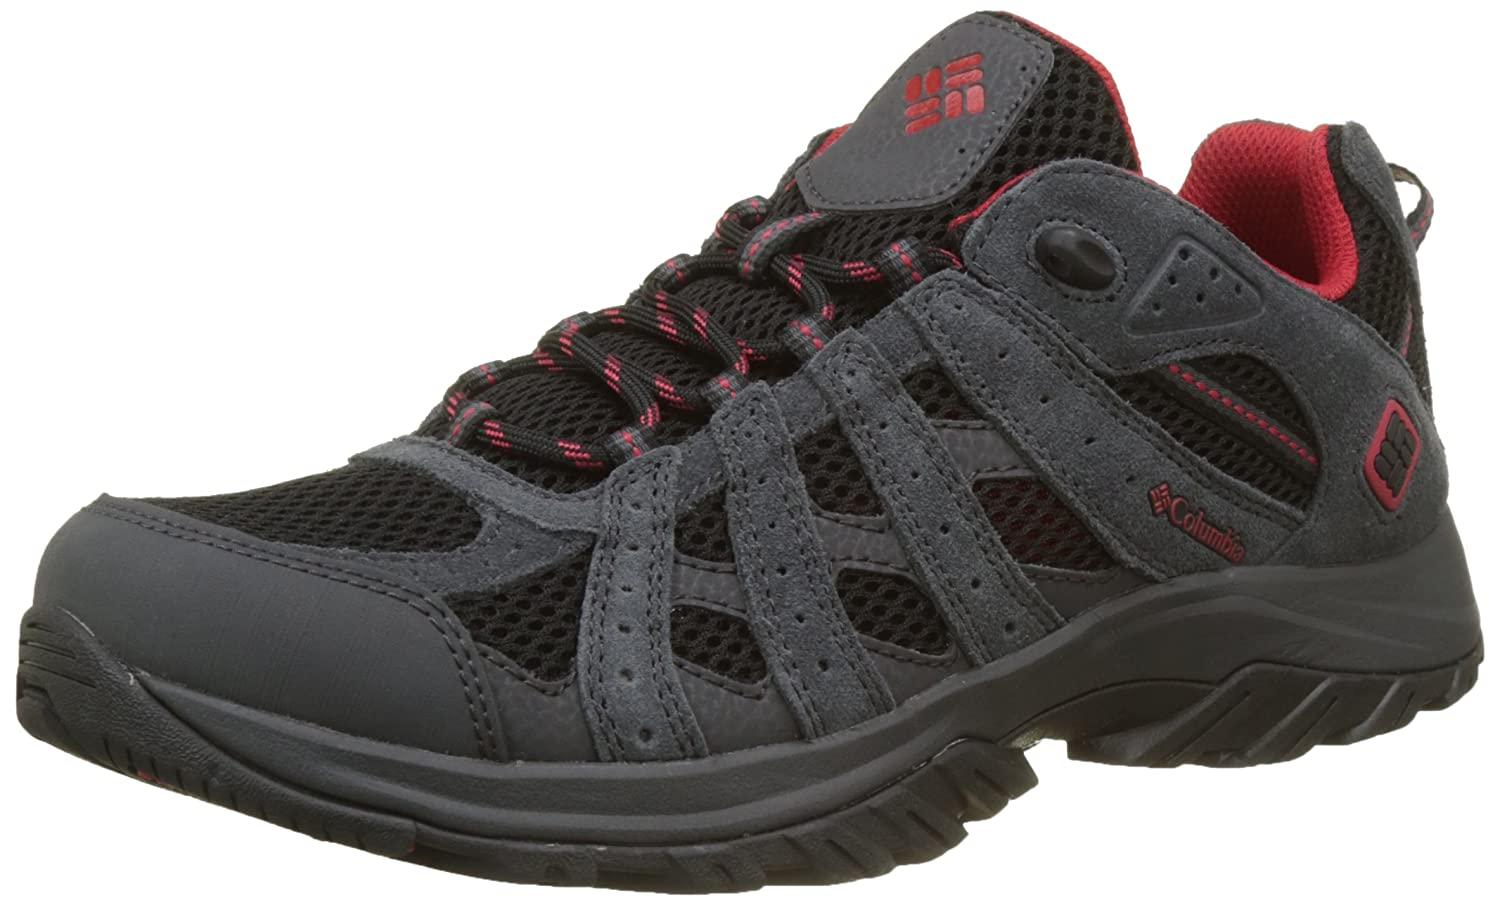 TALLA 43.5 EU. Columbia Canyon Point, Zapatillas de Senderismo para Hombre